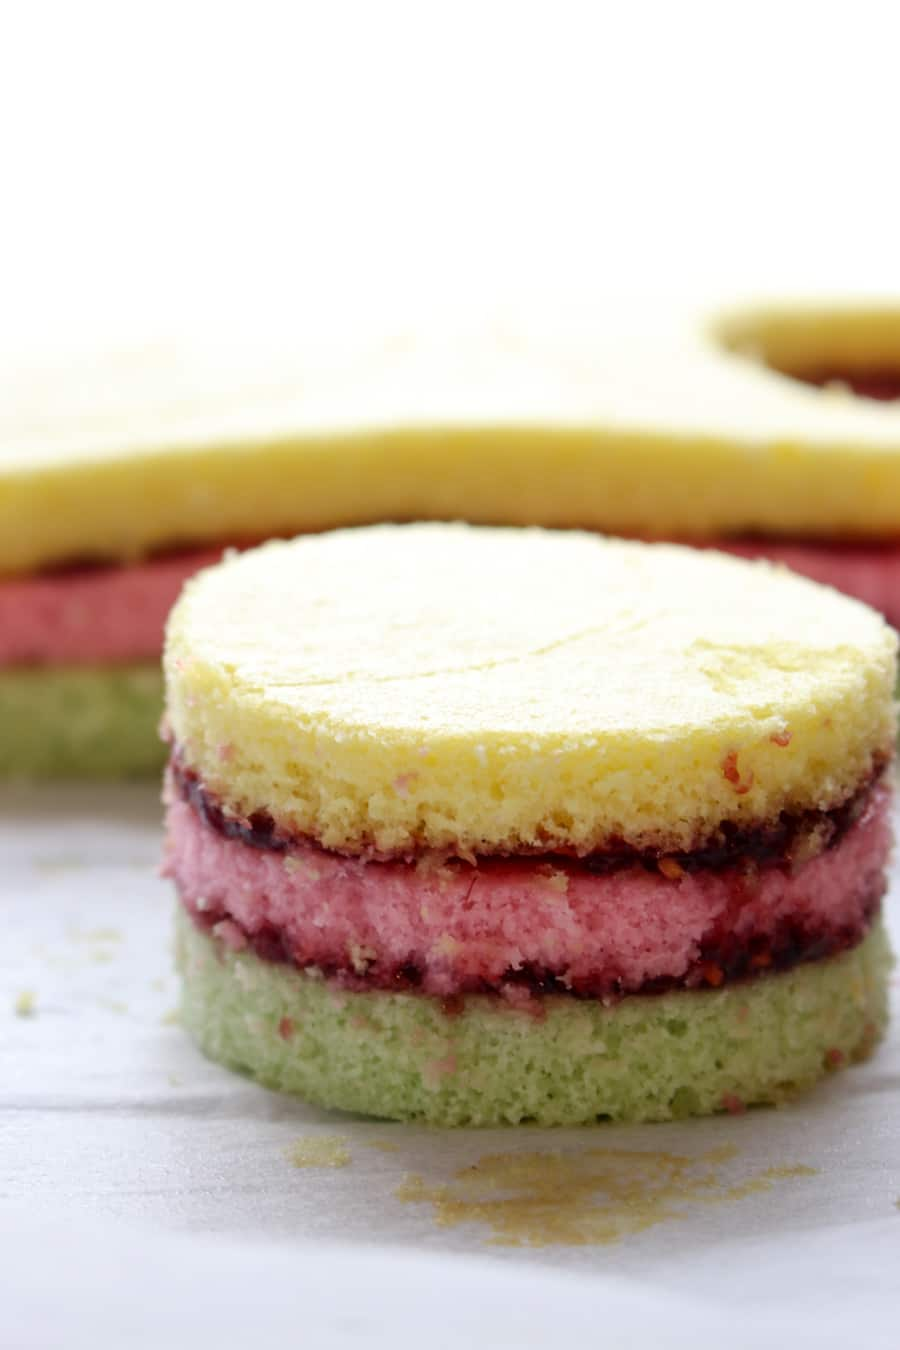 Colored cake stacks cut into a circle